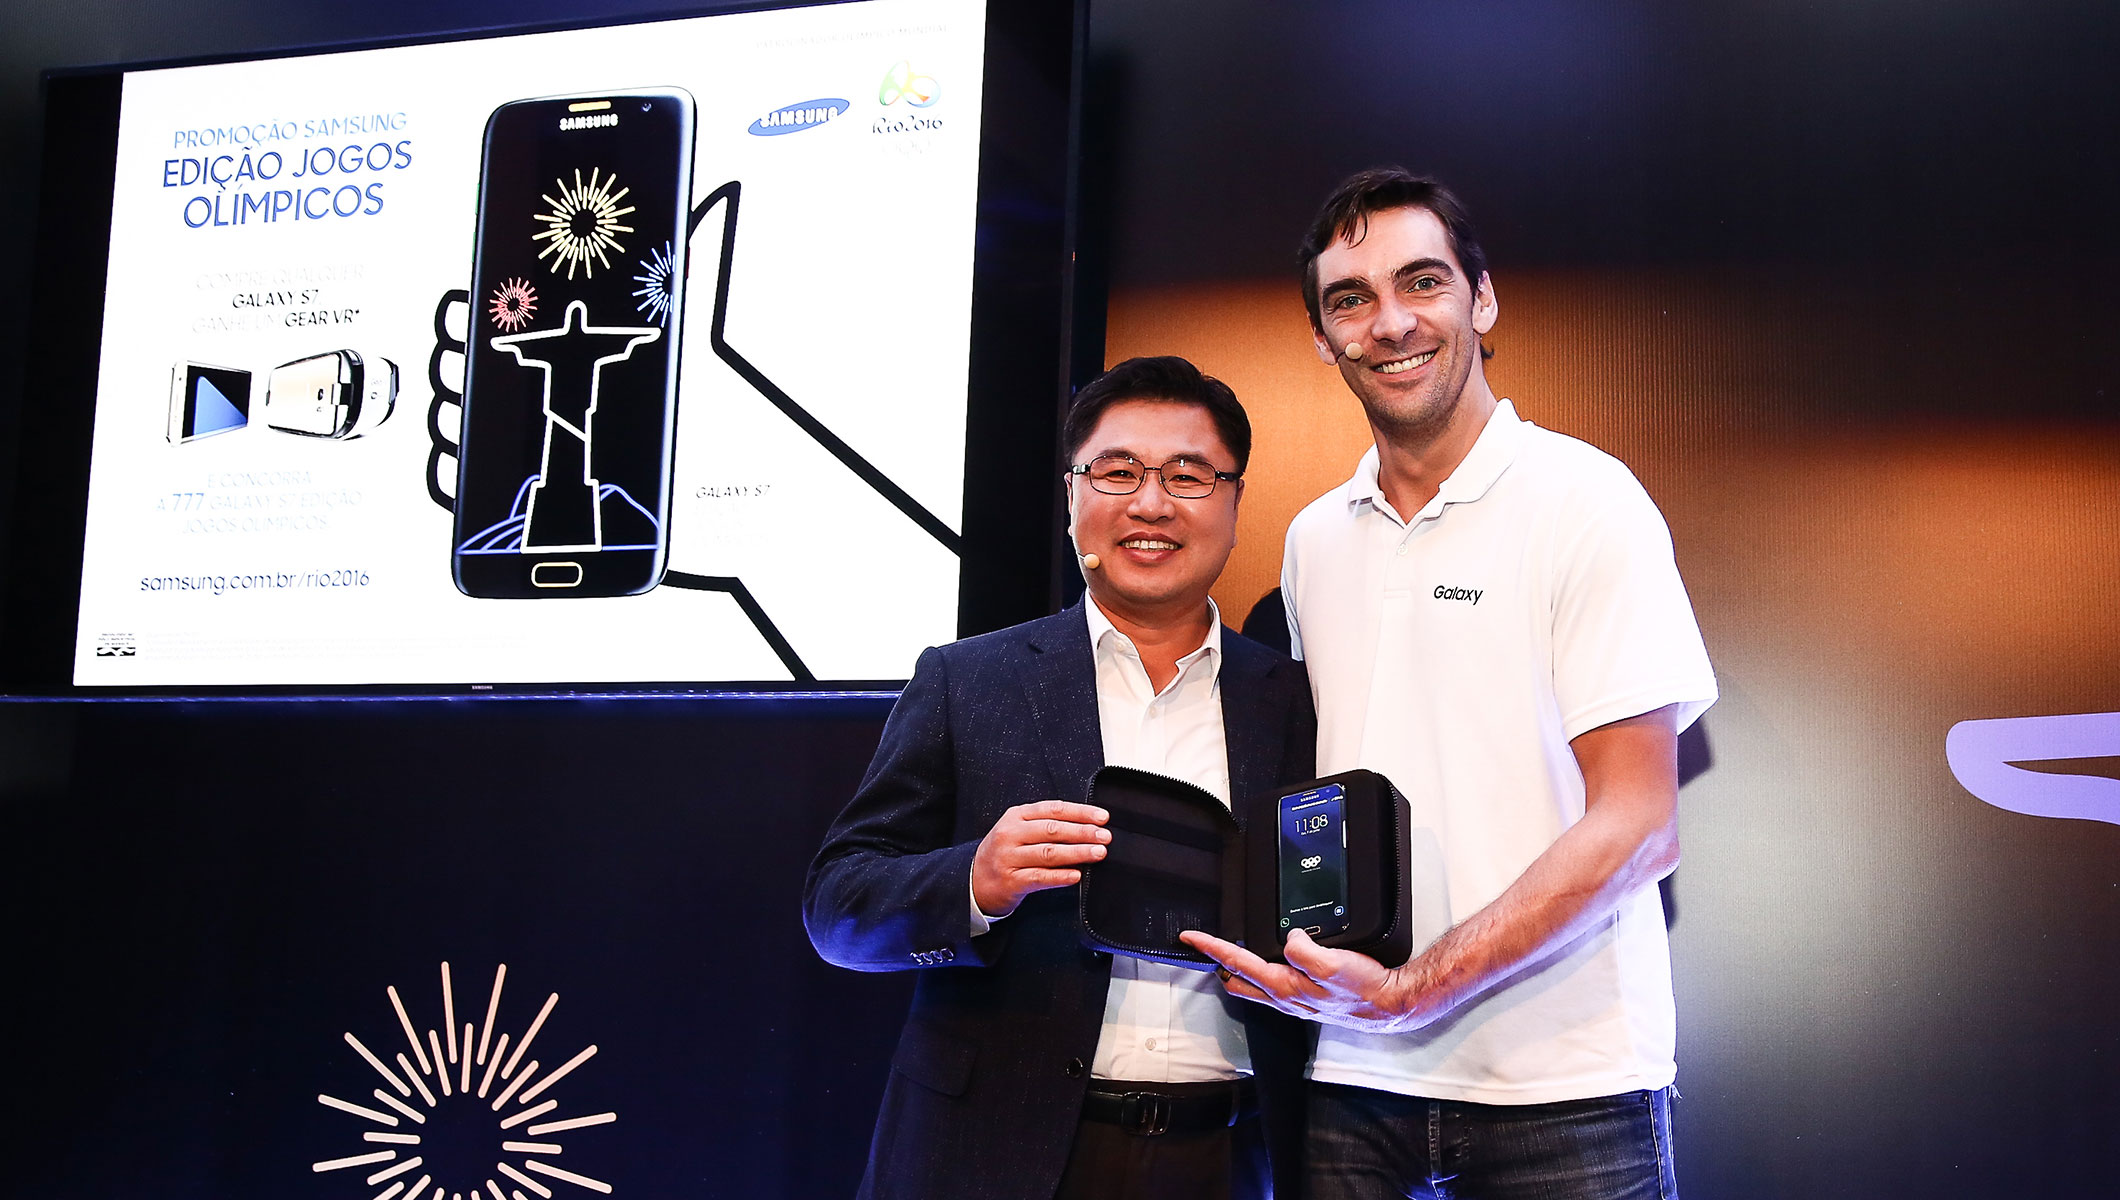 Vice President of the Mobile Division of Samsung Brazil, Changhoon Yoon, introducing Galaxy S7 edge Olympic Games Limited Edition with Athens Olympic gold medalist and former volleyball player, Giba, during a Samsung event in Sao Paulo, Brazil to highlight Samsung's Rio 2016 Olympic Games initiatives.